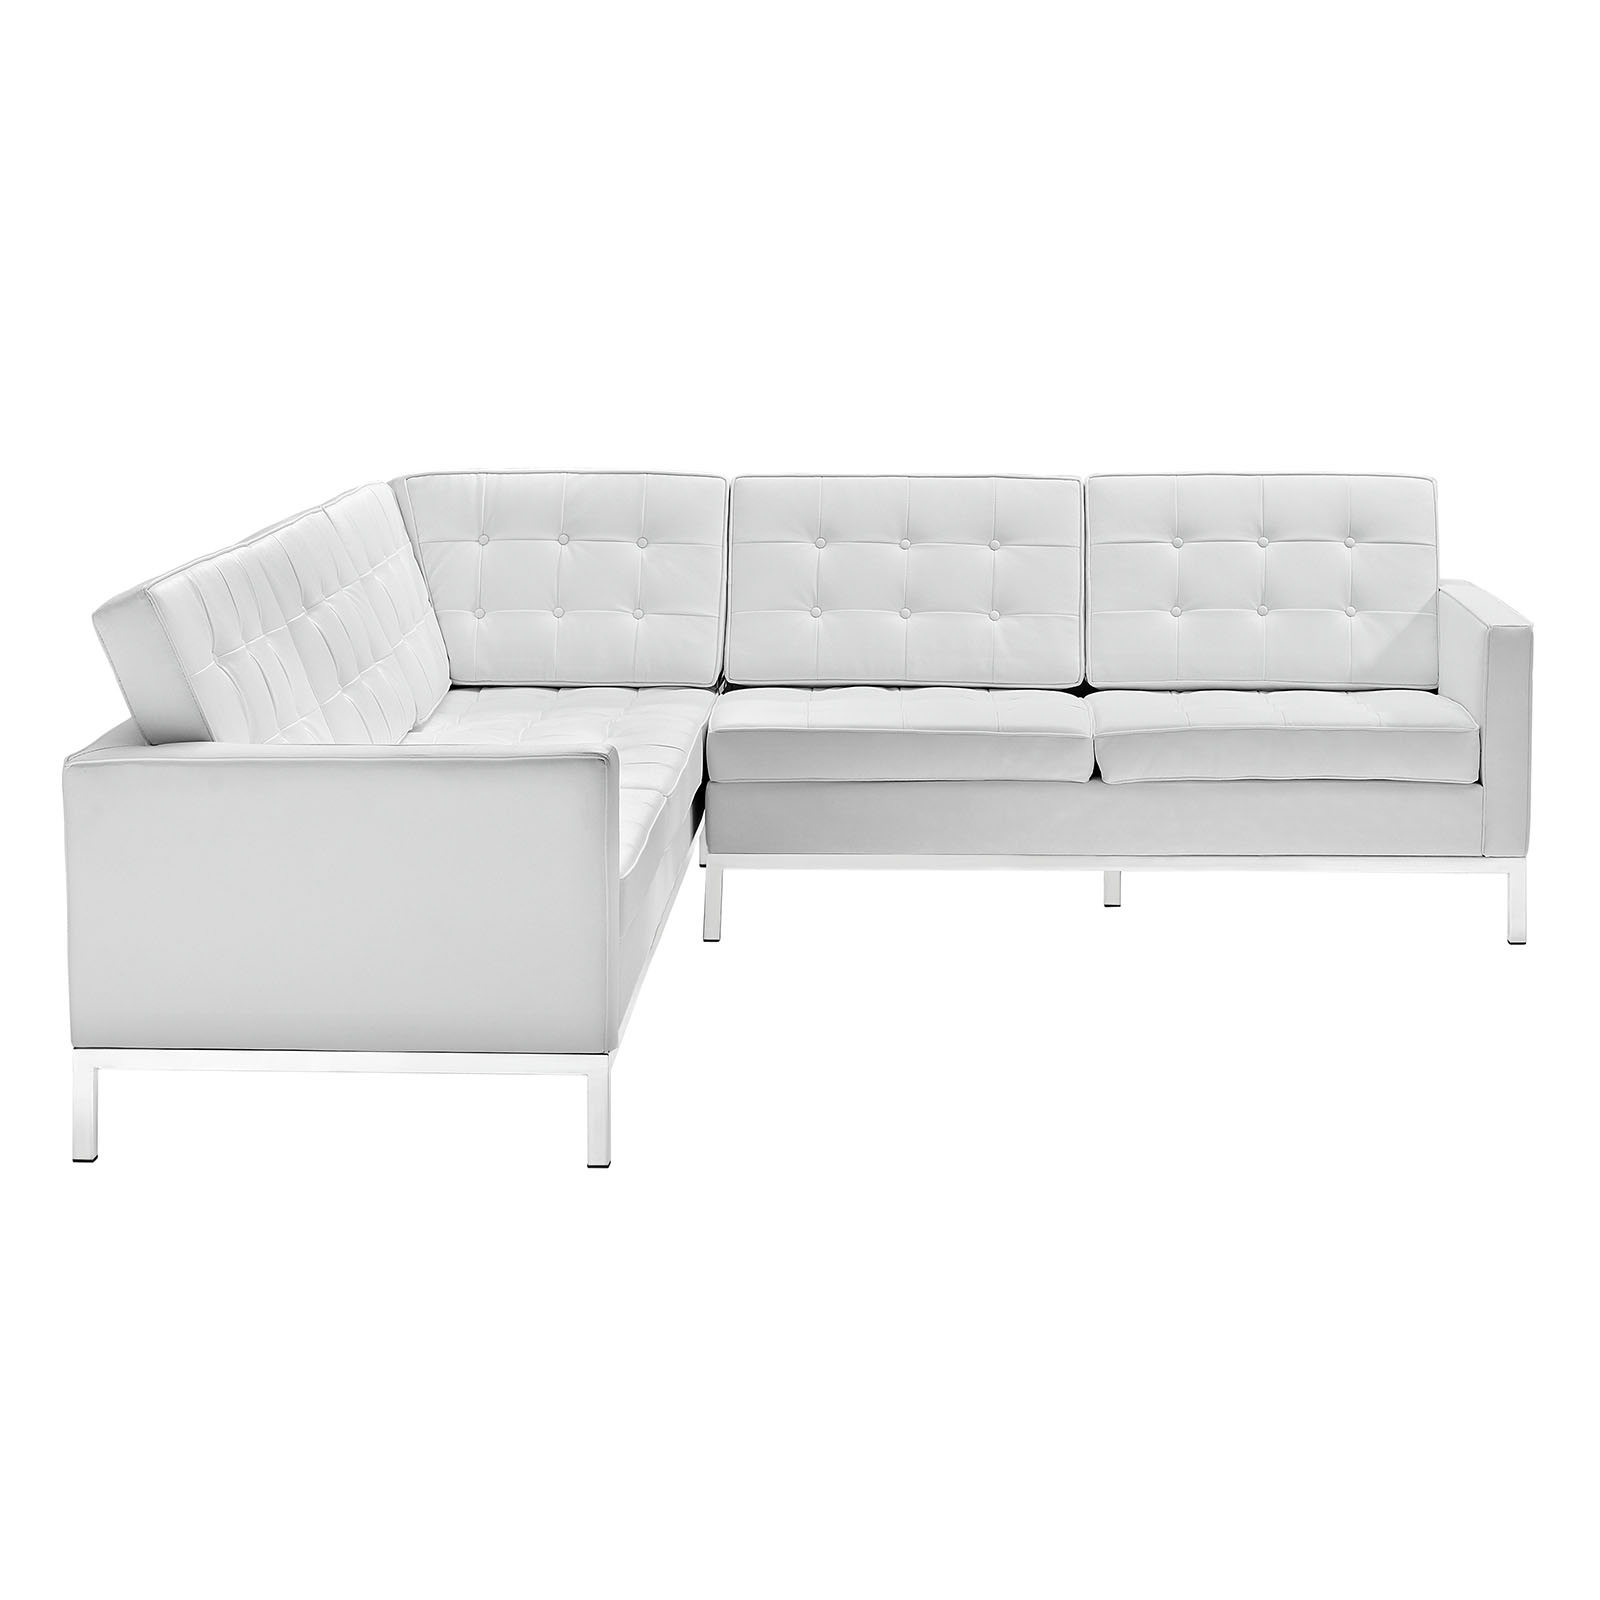 Modway Loft Leather L Shaped Sectional Sofa In White – Beyond Stores For Newest Leather L Shaped Sectional Sofas (View 14 of 20)